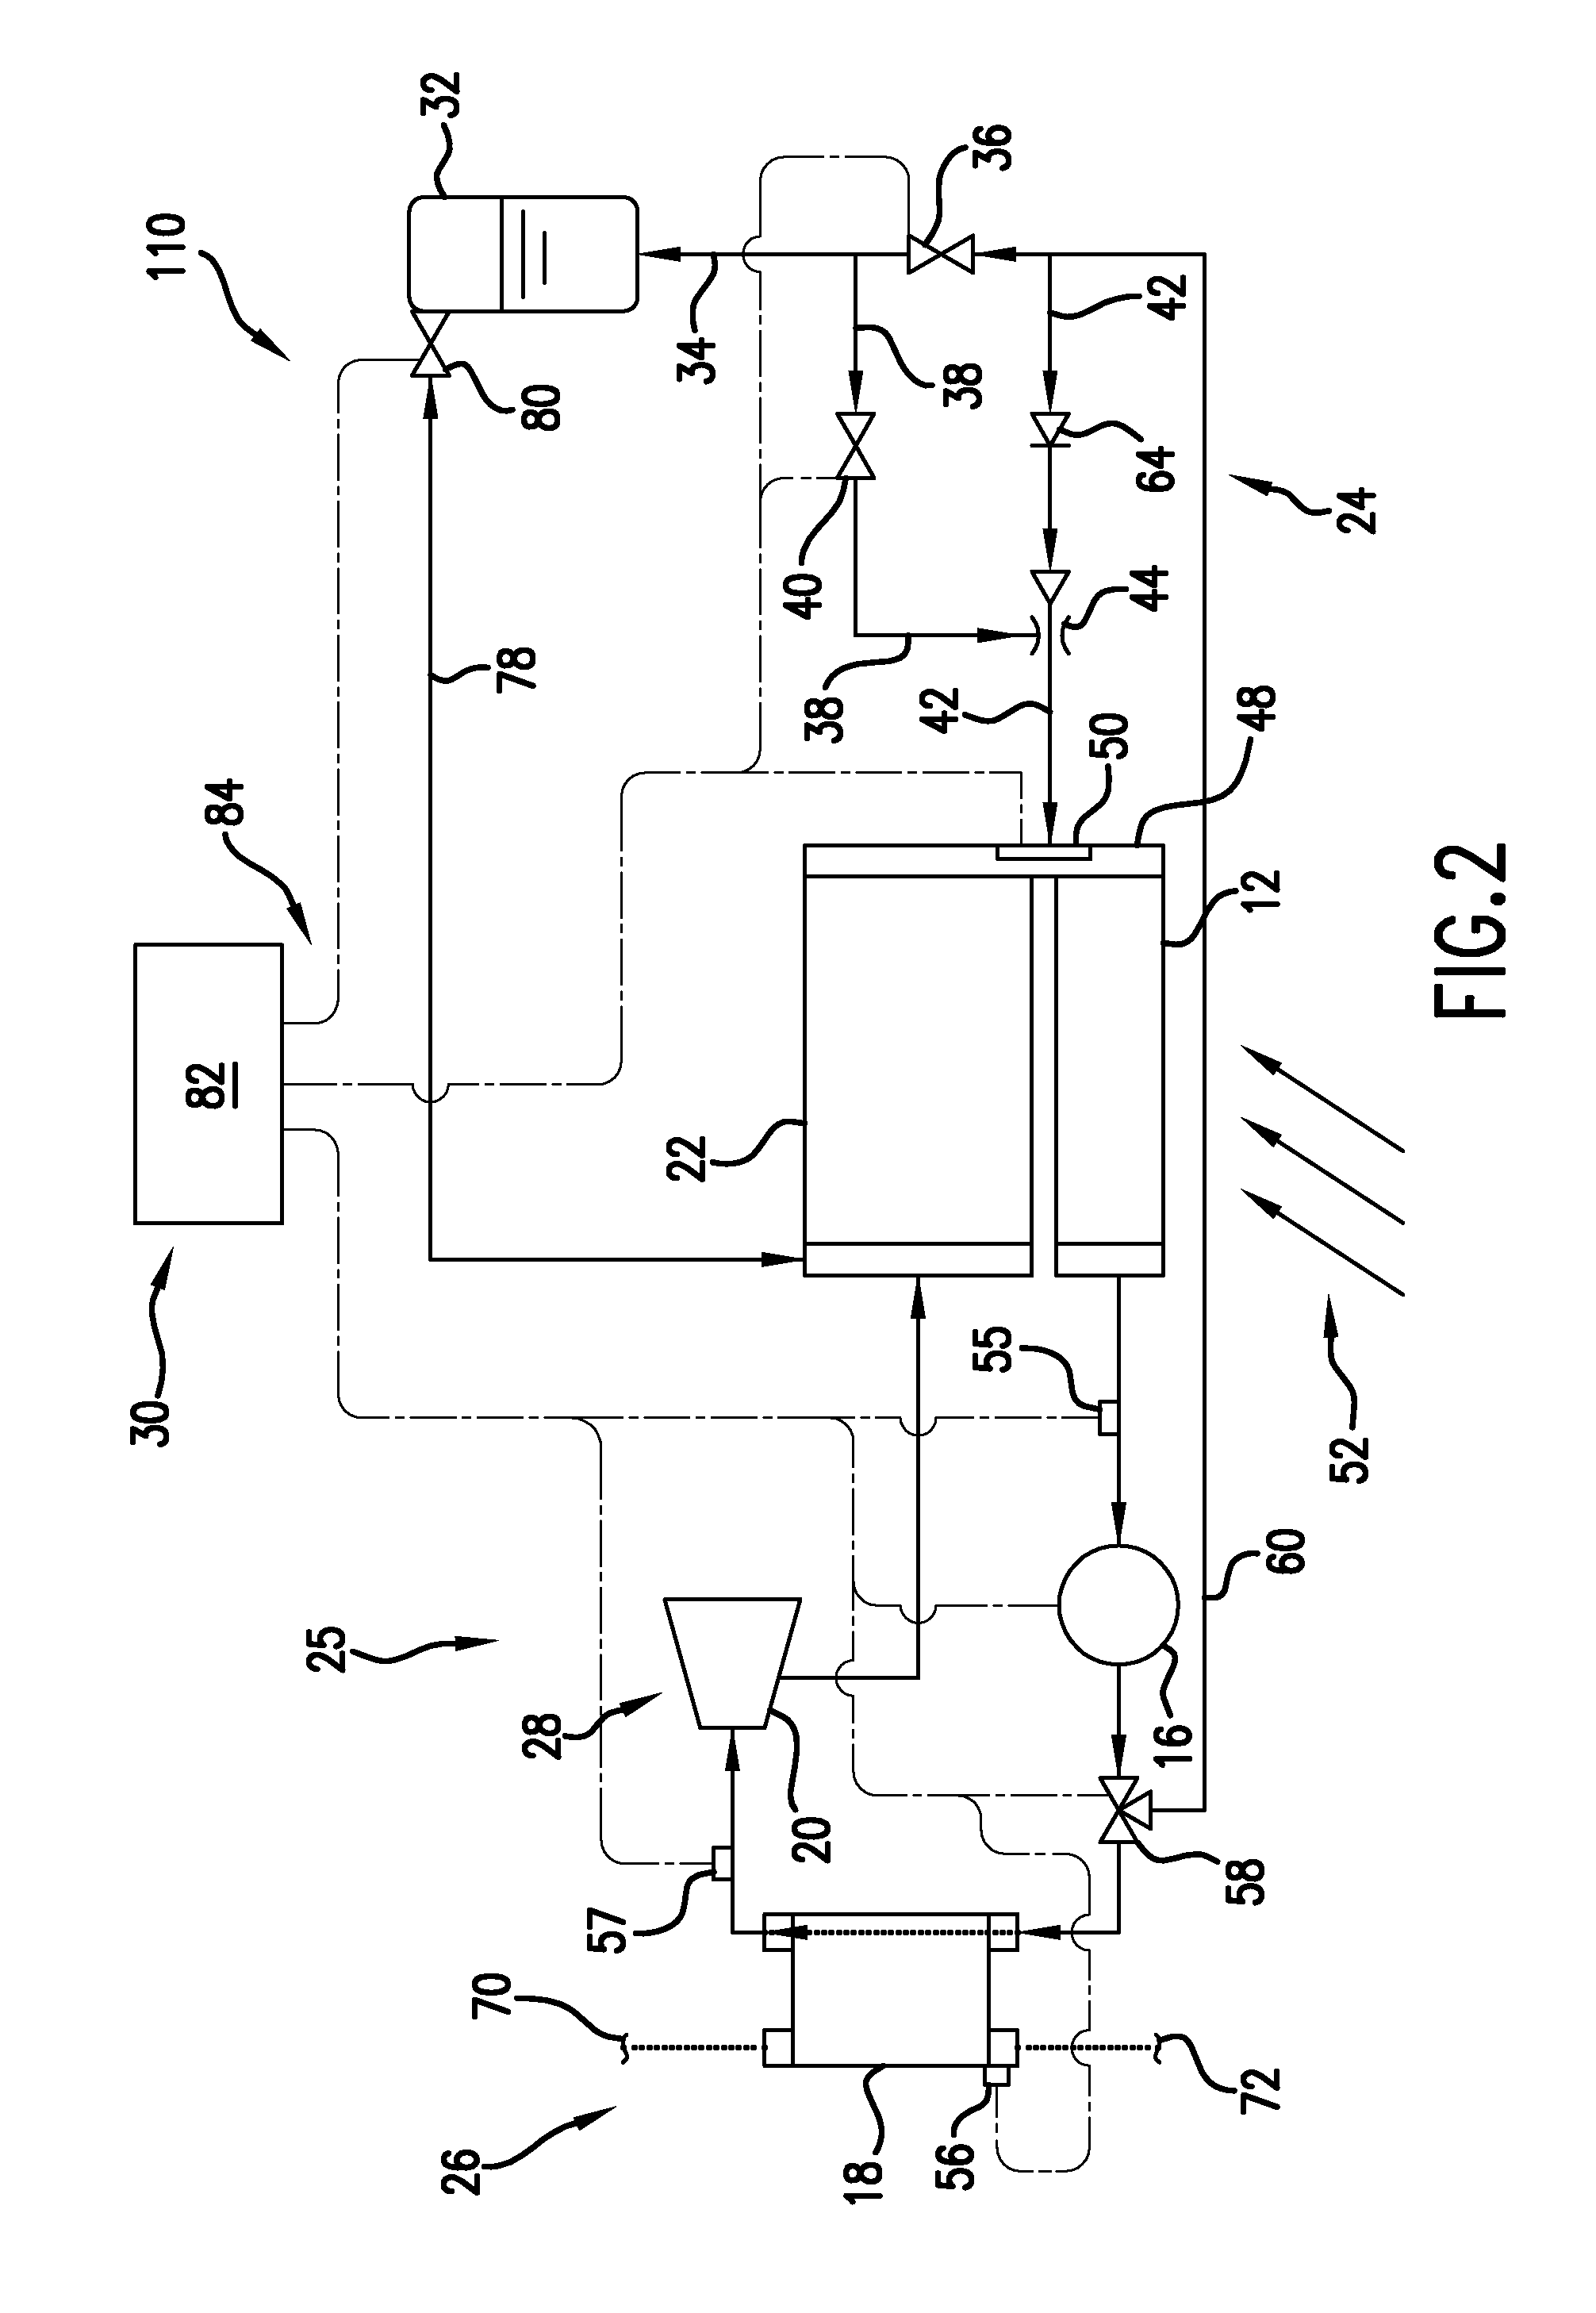 patent us20120210713 - rankine cycle waste heat recovery system